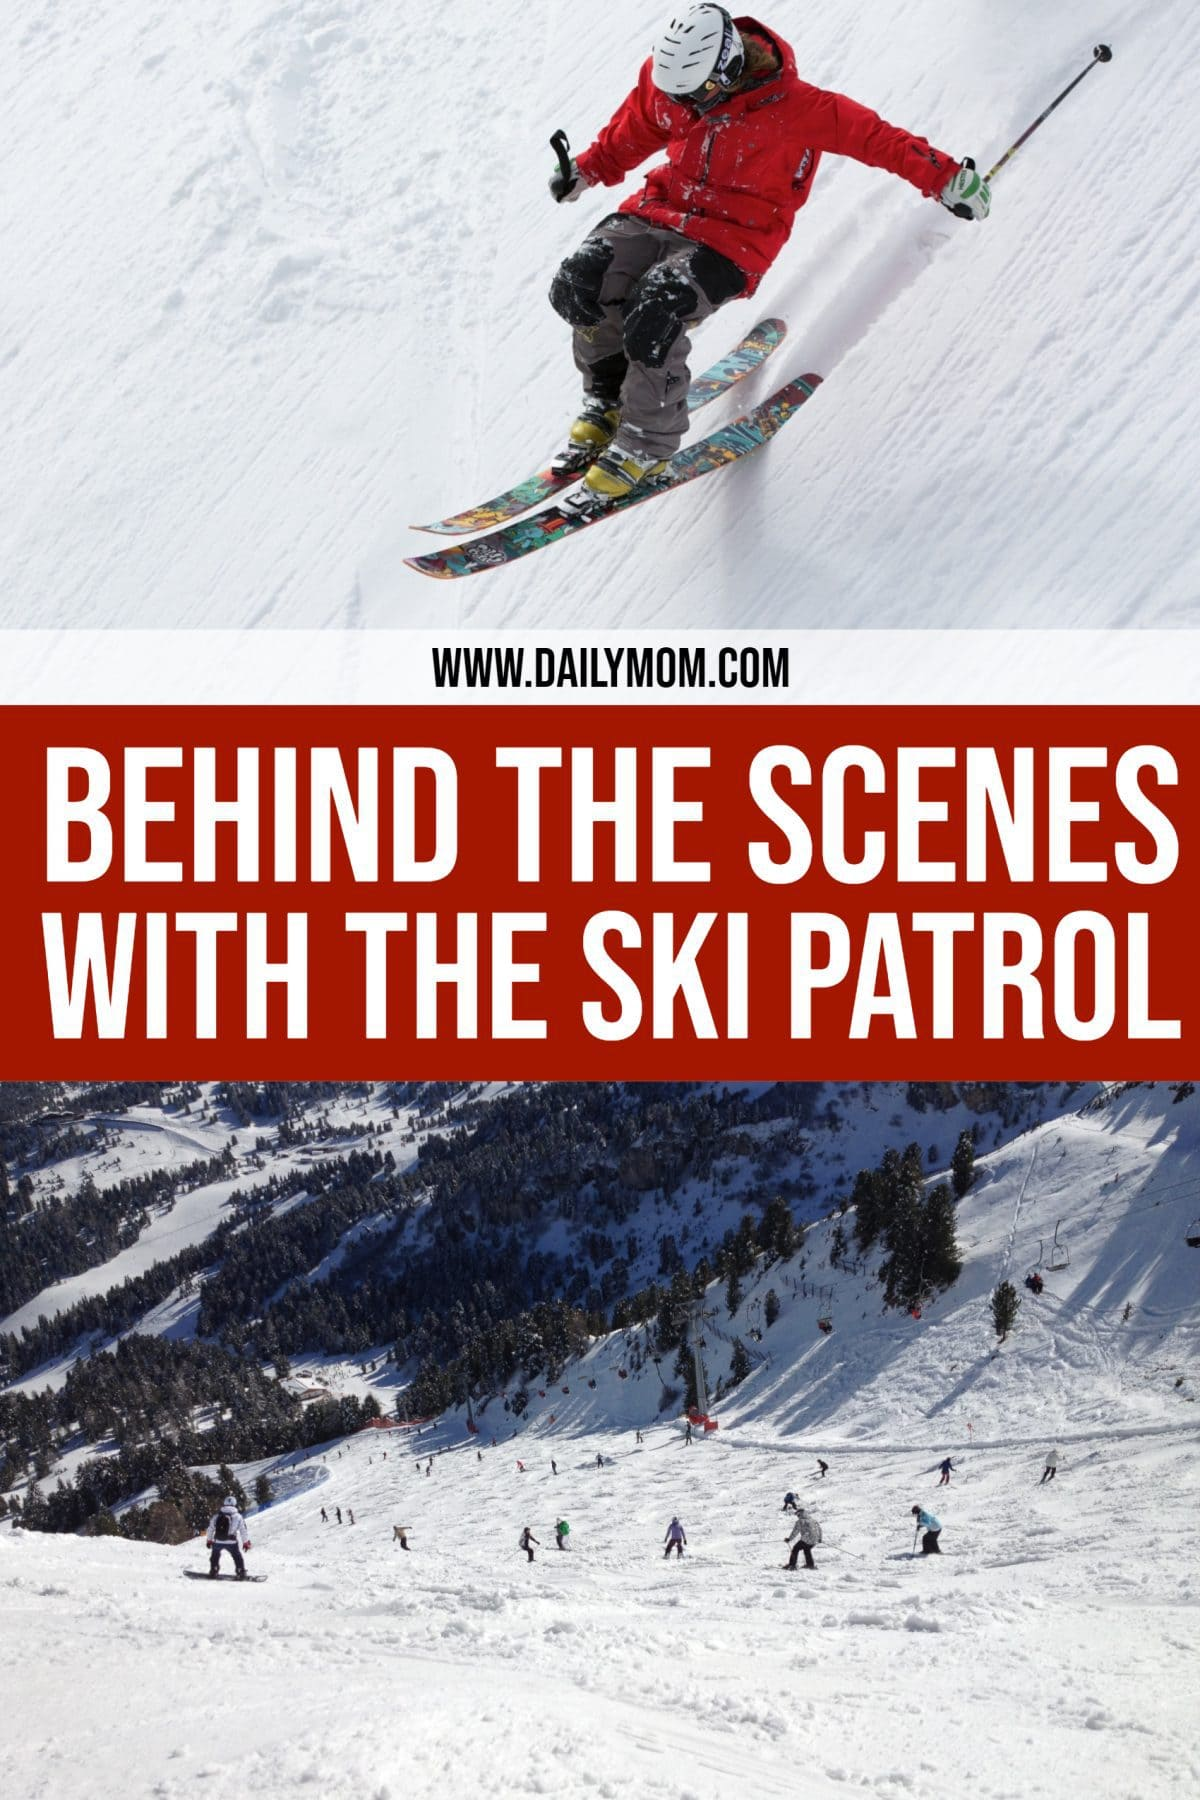 Behind the scenes with the ski patrol